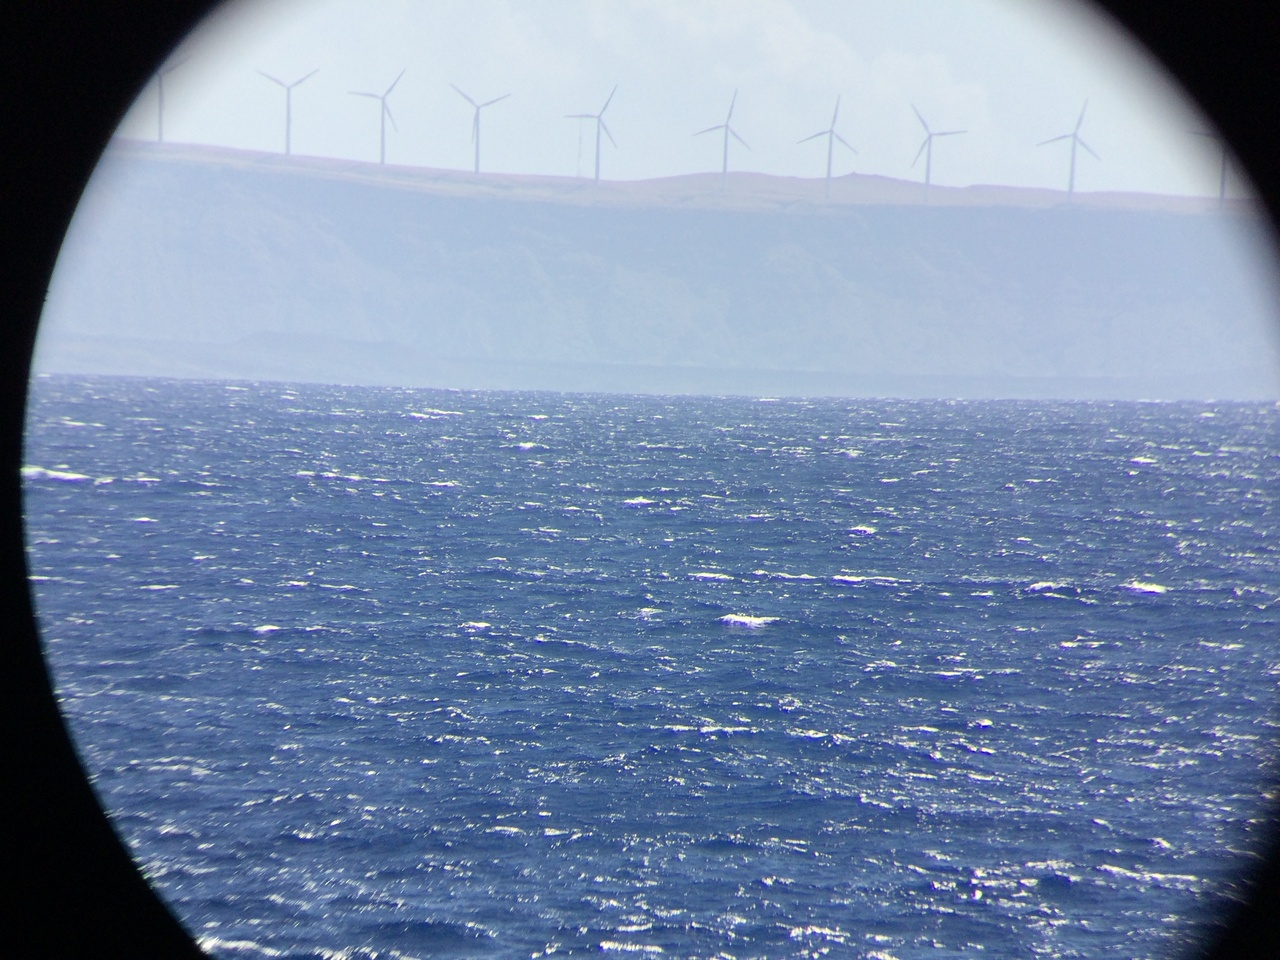 Pakani Nui Wind Farm seen from offshore near South Point on Hawai'i Island. Clean energy is an increasingly important way that our island communities generate power. One of our main funders for this WHICEAS cruise is the Bureau of Ocean Energy Management (BOEM), and they are very interested in developing projects for renewable energy. Photo: NOAA Fisheries/Suzanne Yin.